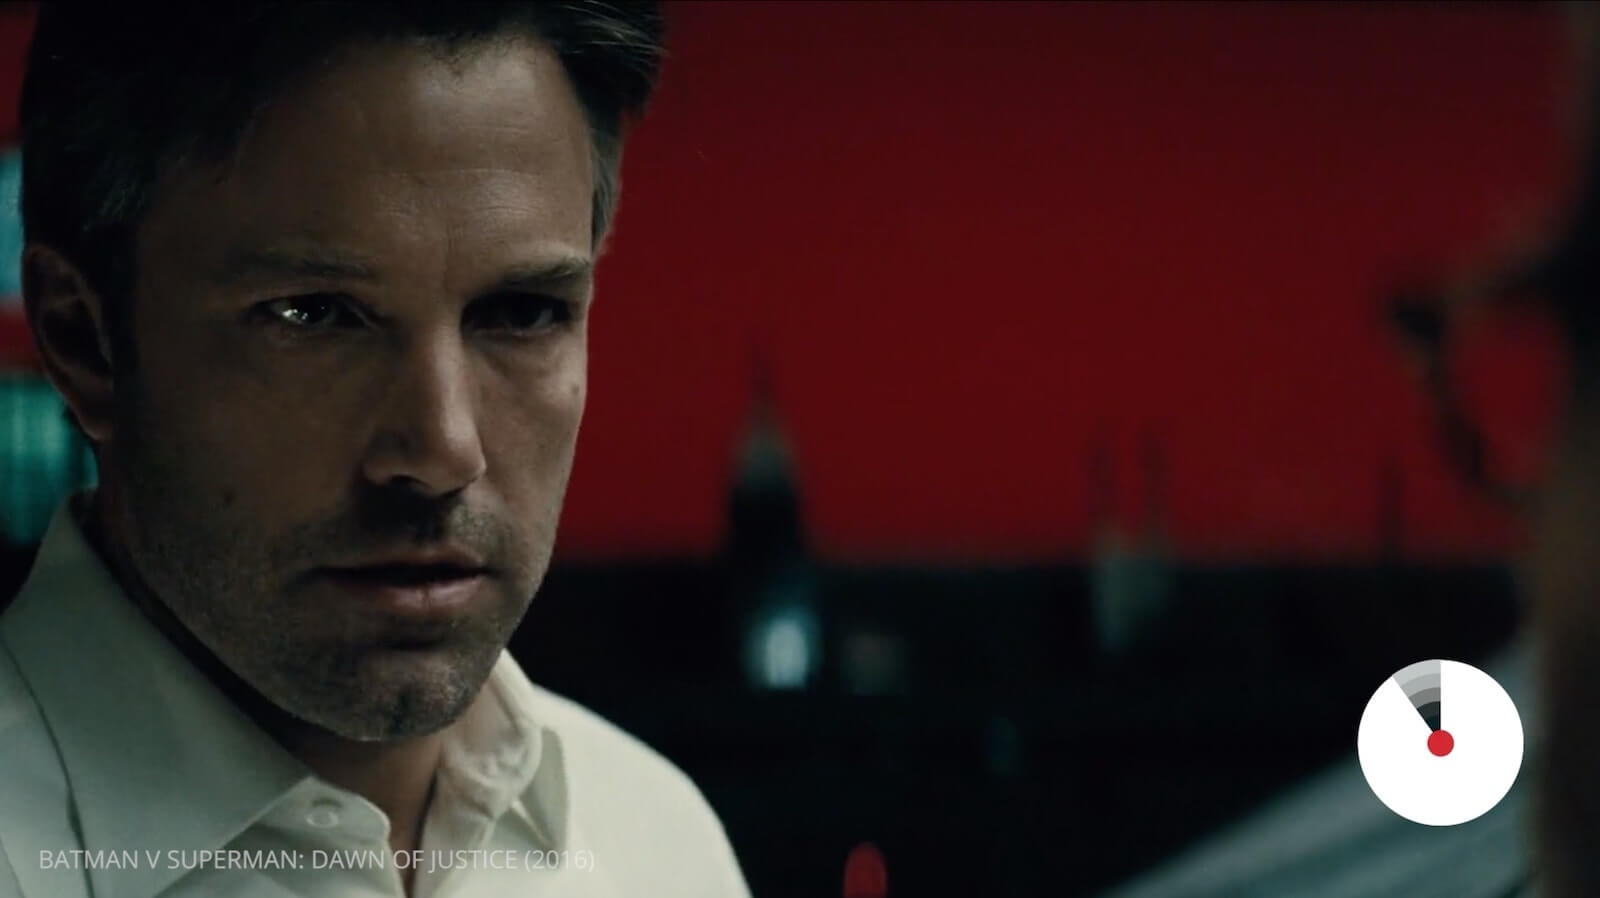 Zack Snyder - Batman v Superman - StudioBinder